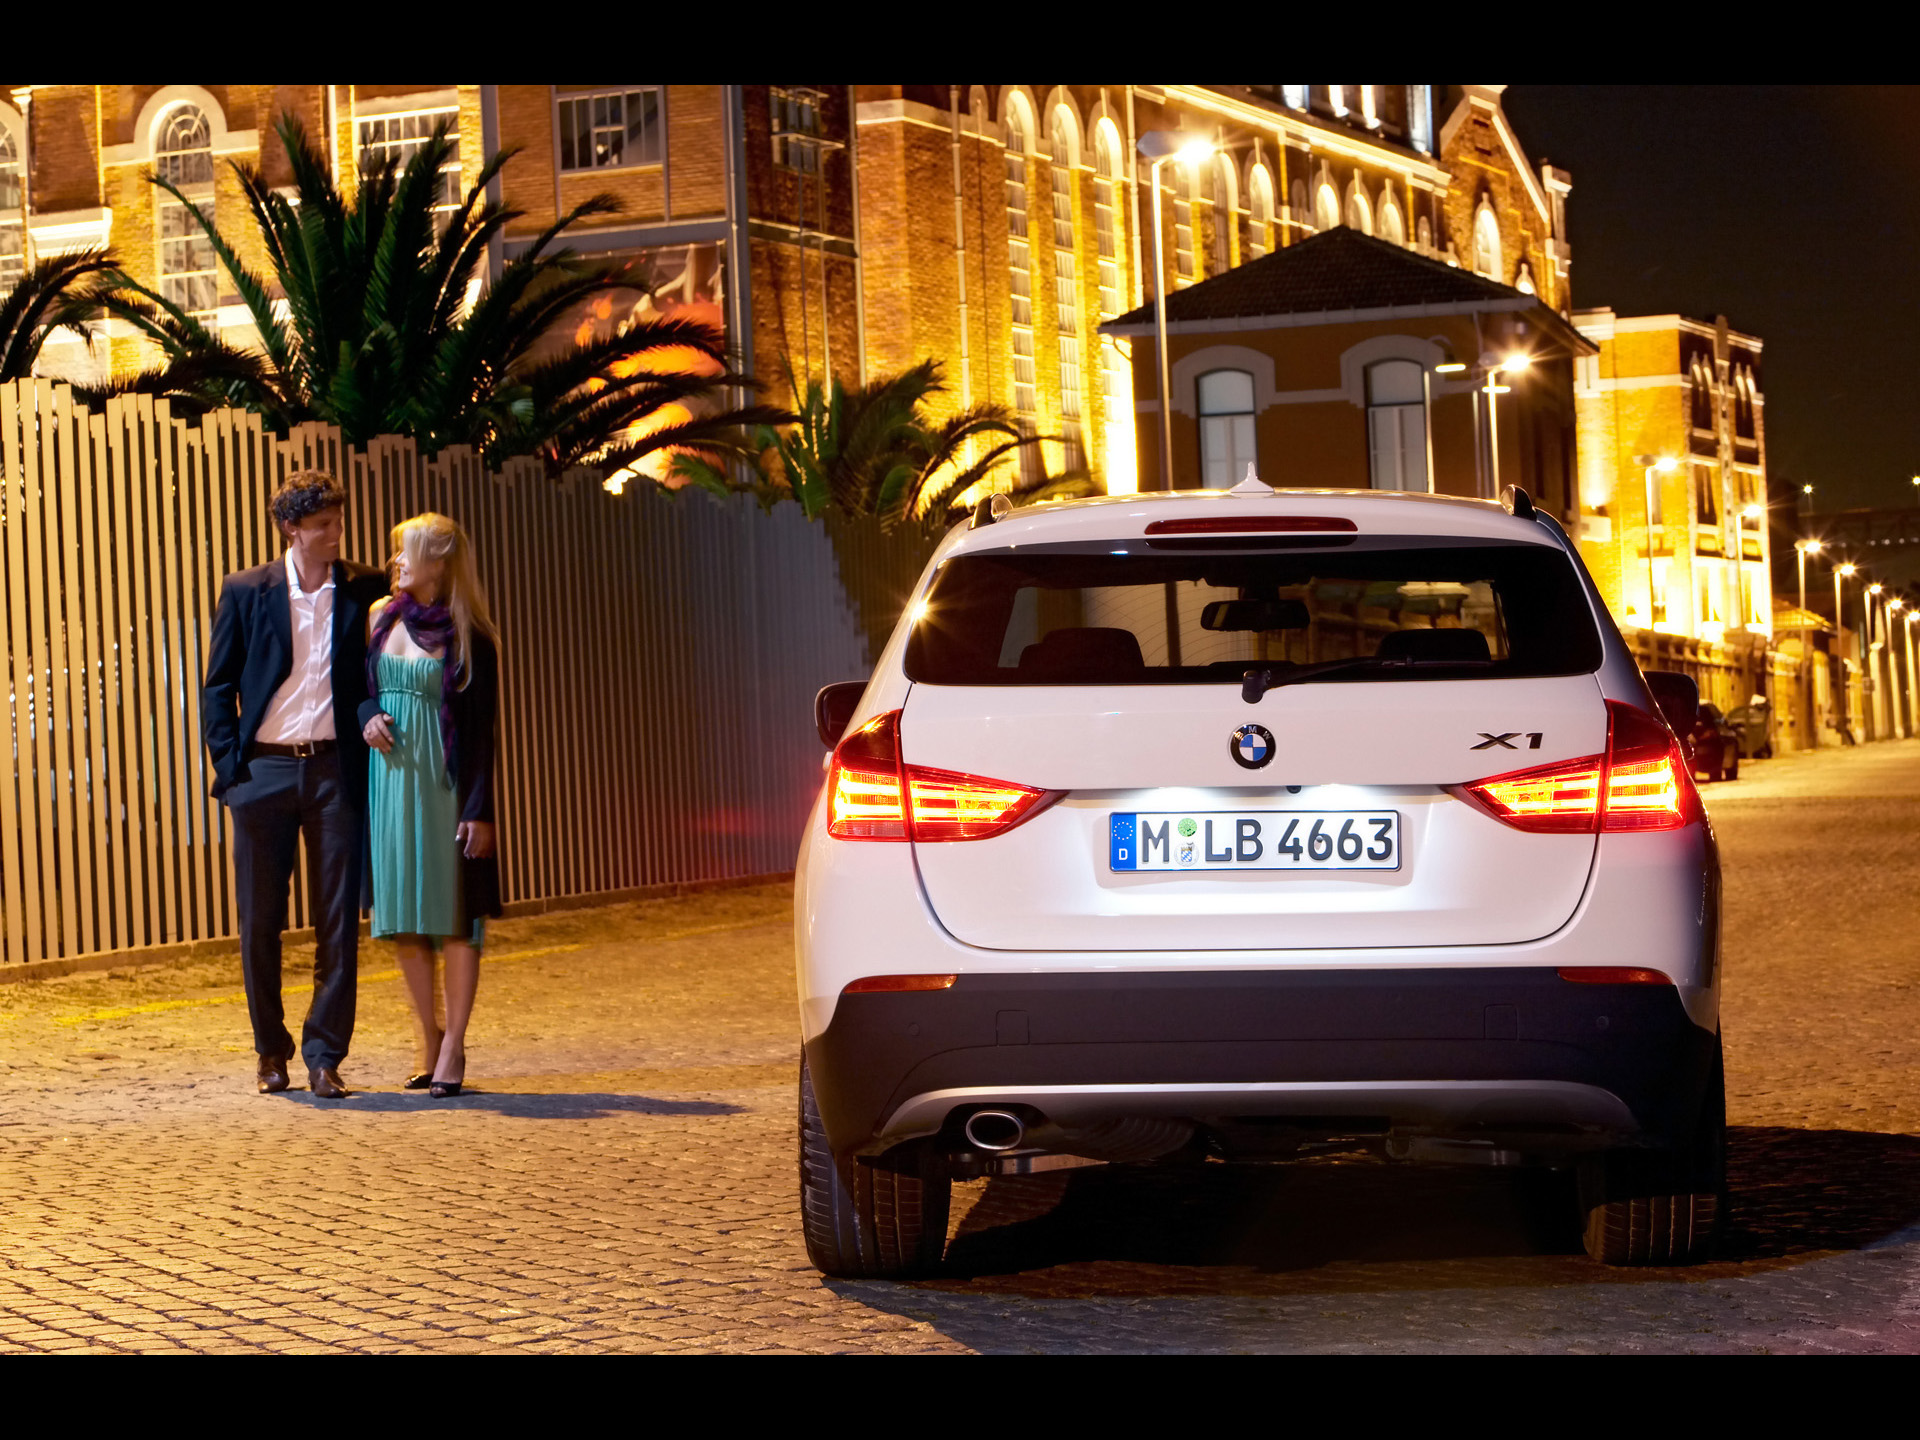 Bmw X1 And Couple Wallpapers Bmw X1 And Couple Stock Photos